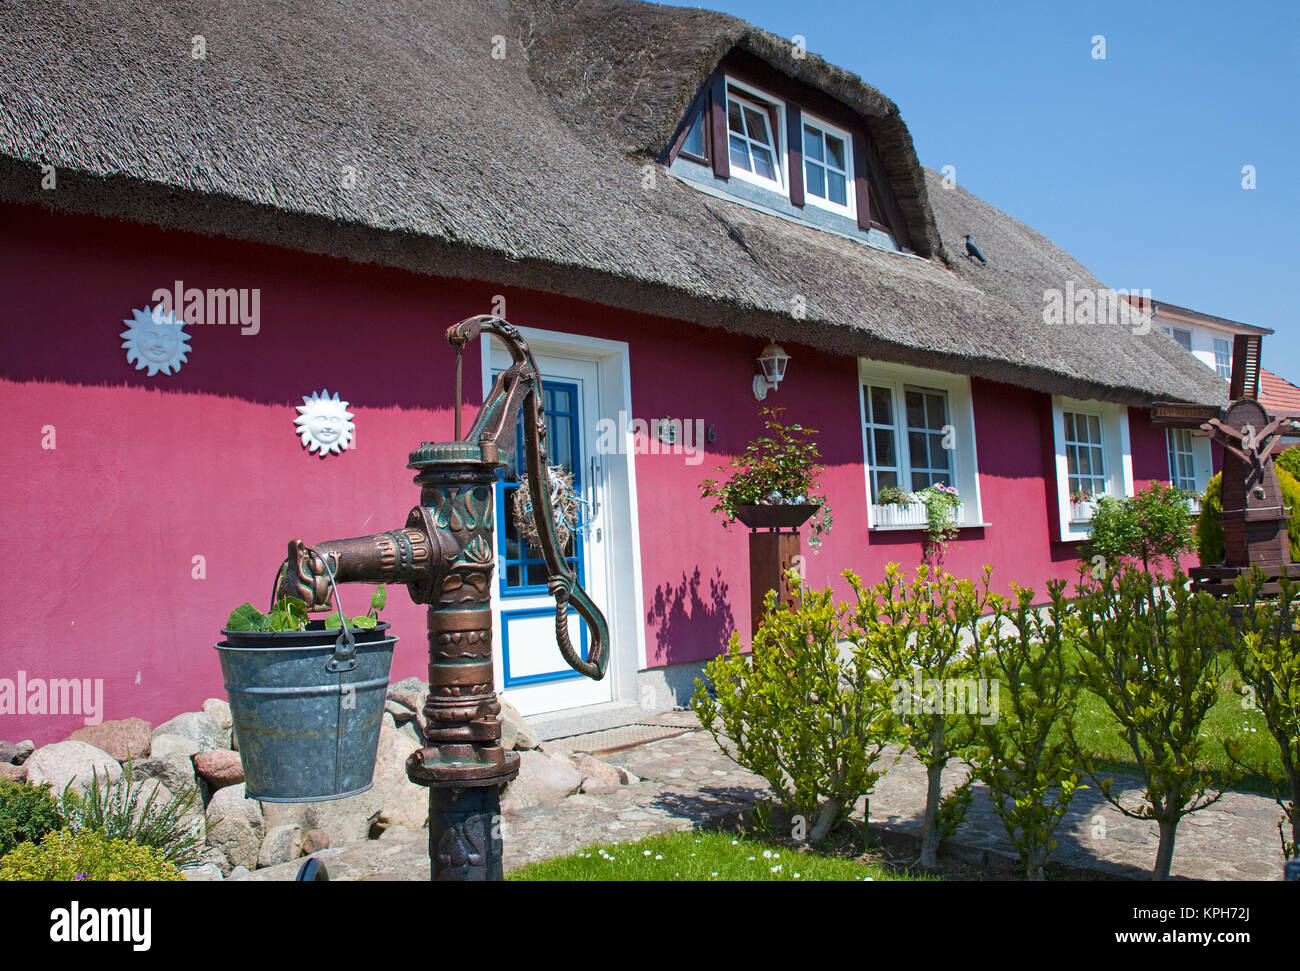 Water well in front of a thatched-roof house, Gross Zicker, Ruegen island, Mecklenburg-Western Pomerania, Baltic - Stock Image